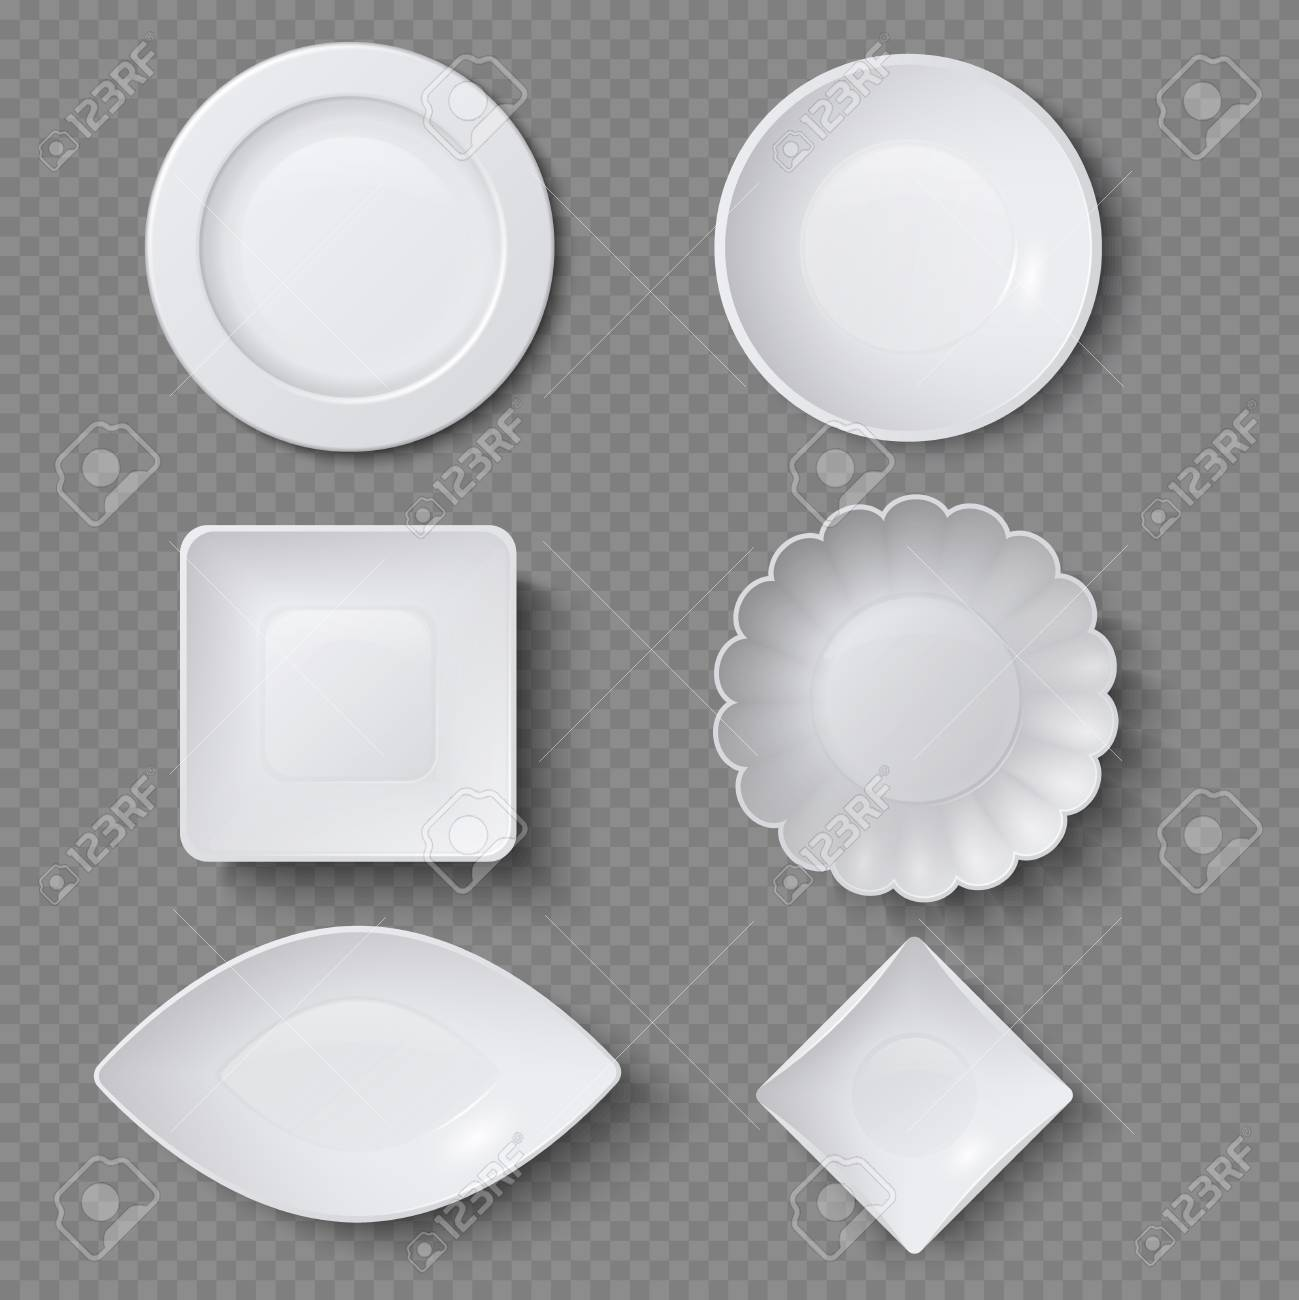 Different shapes of realistic food plates, dishes and bowls vector..